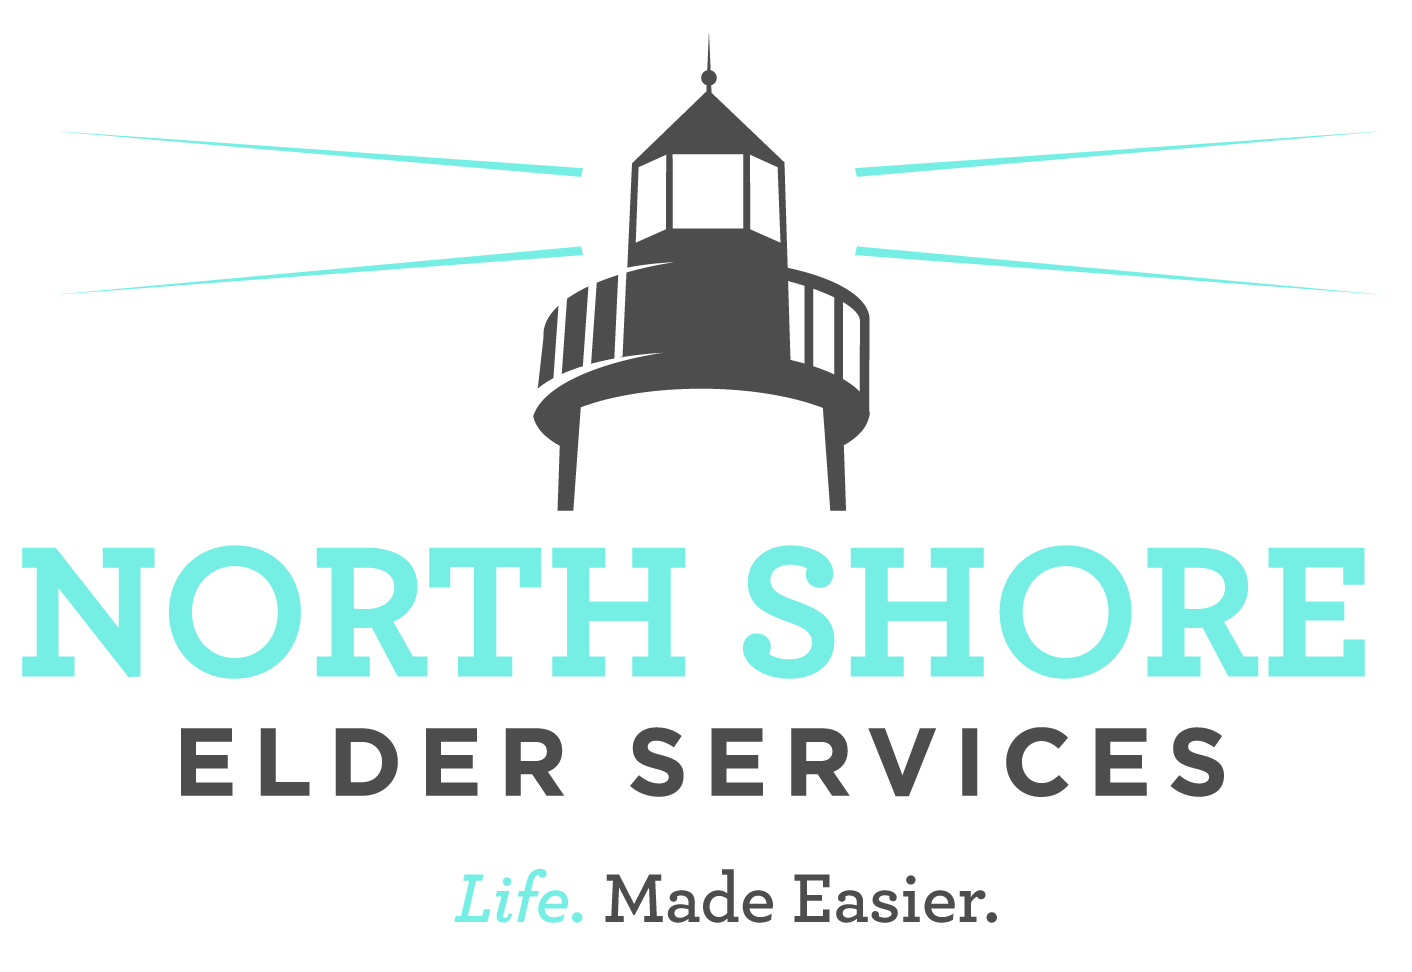 North Shore Elder Services